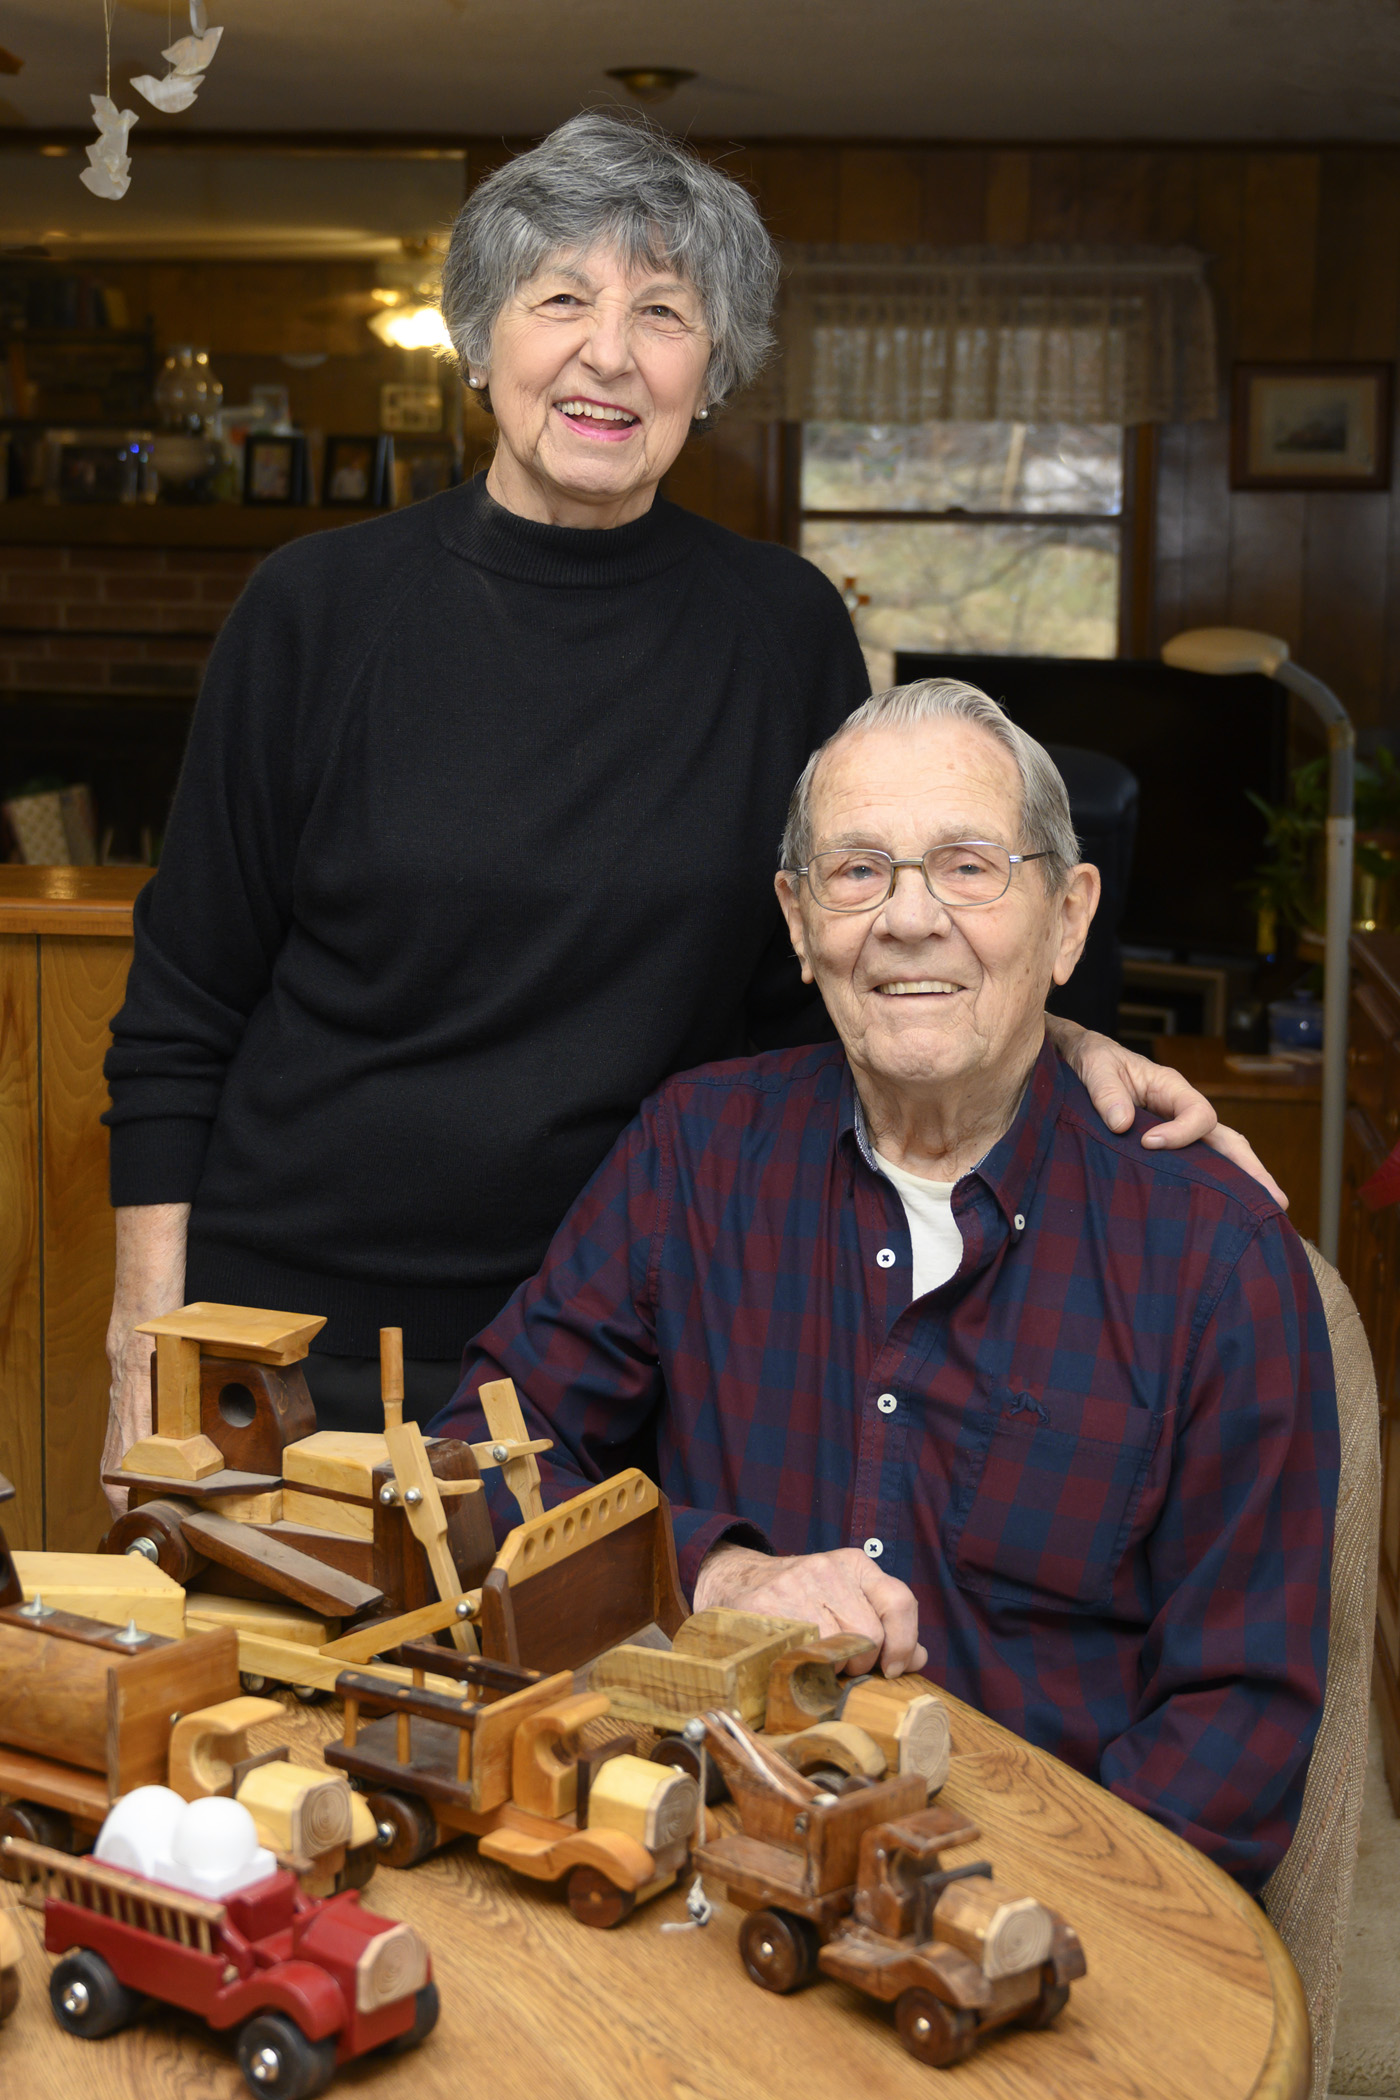 Carl and his wife, Vonnie, with his wooden toy trucks